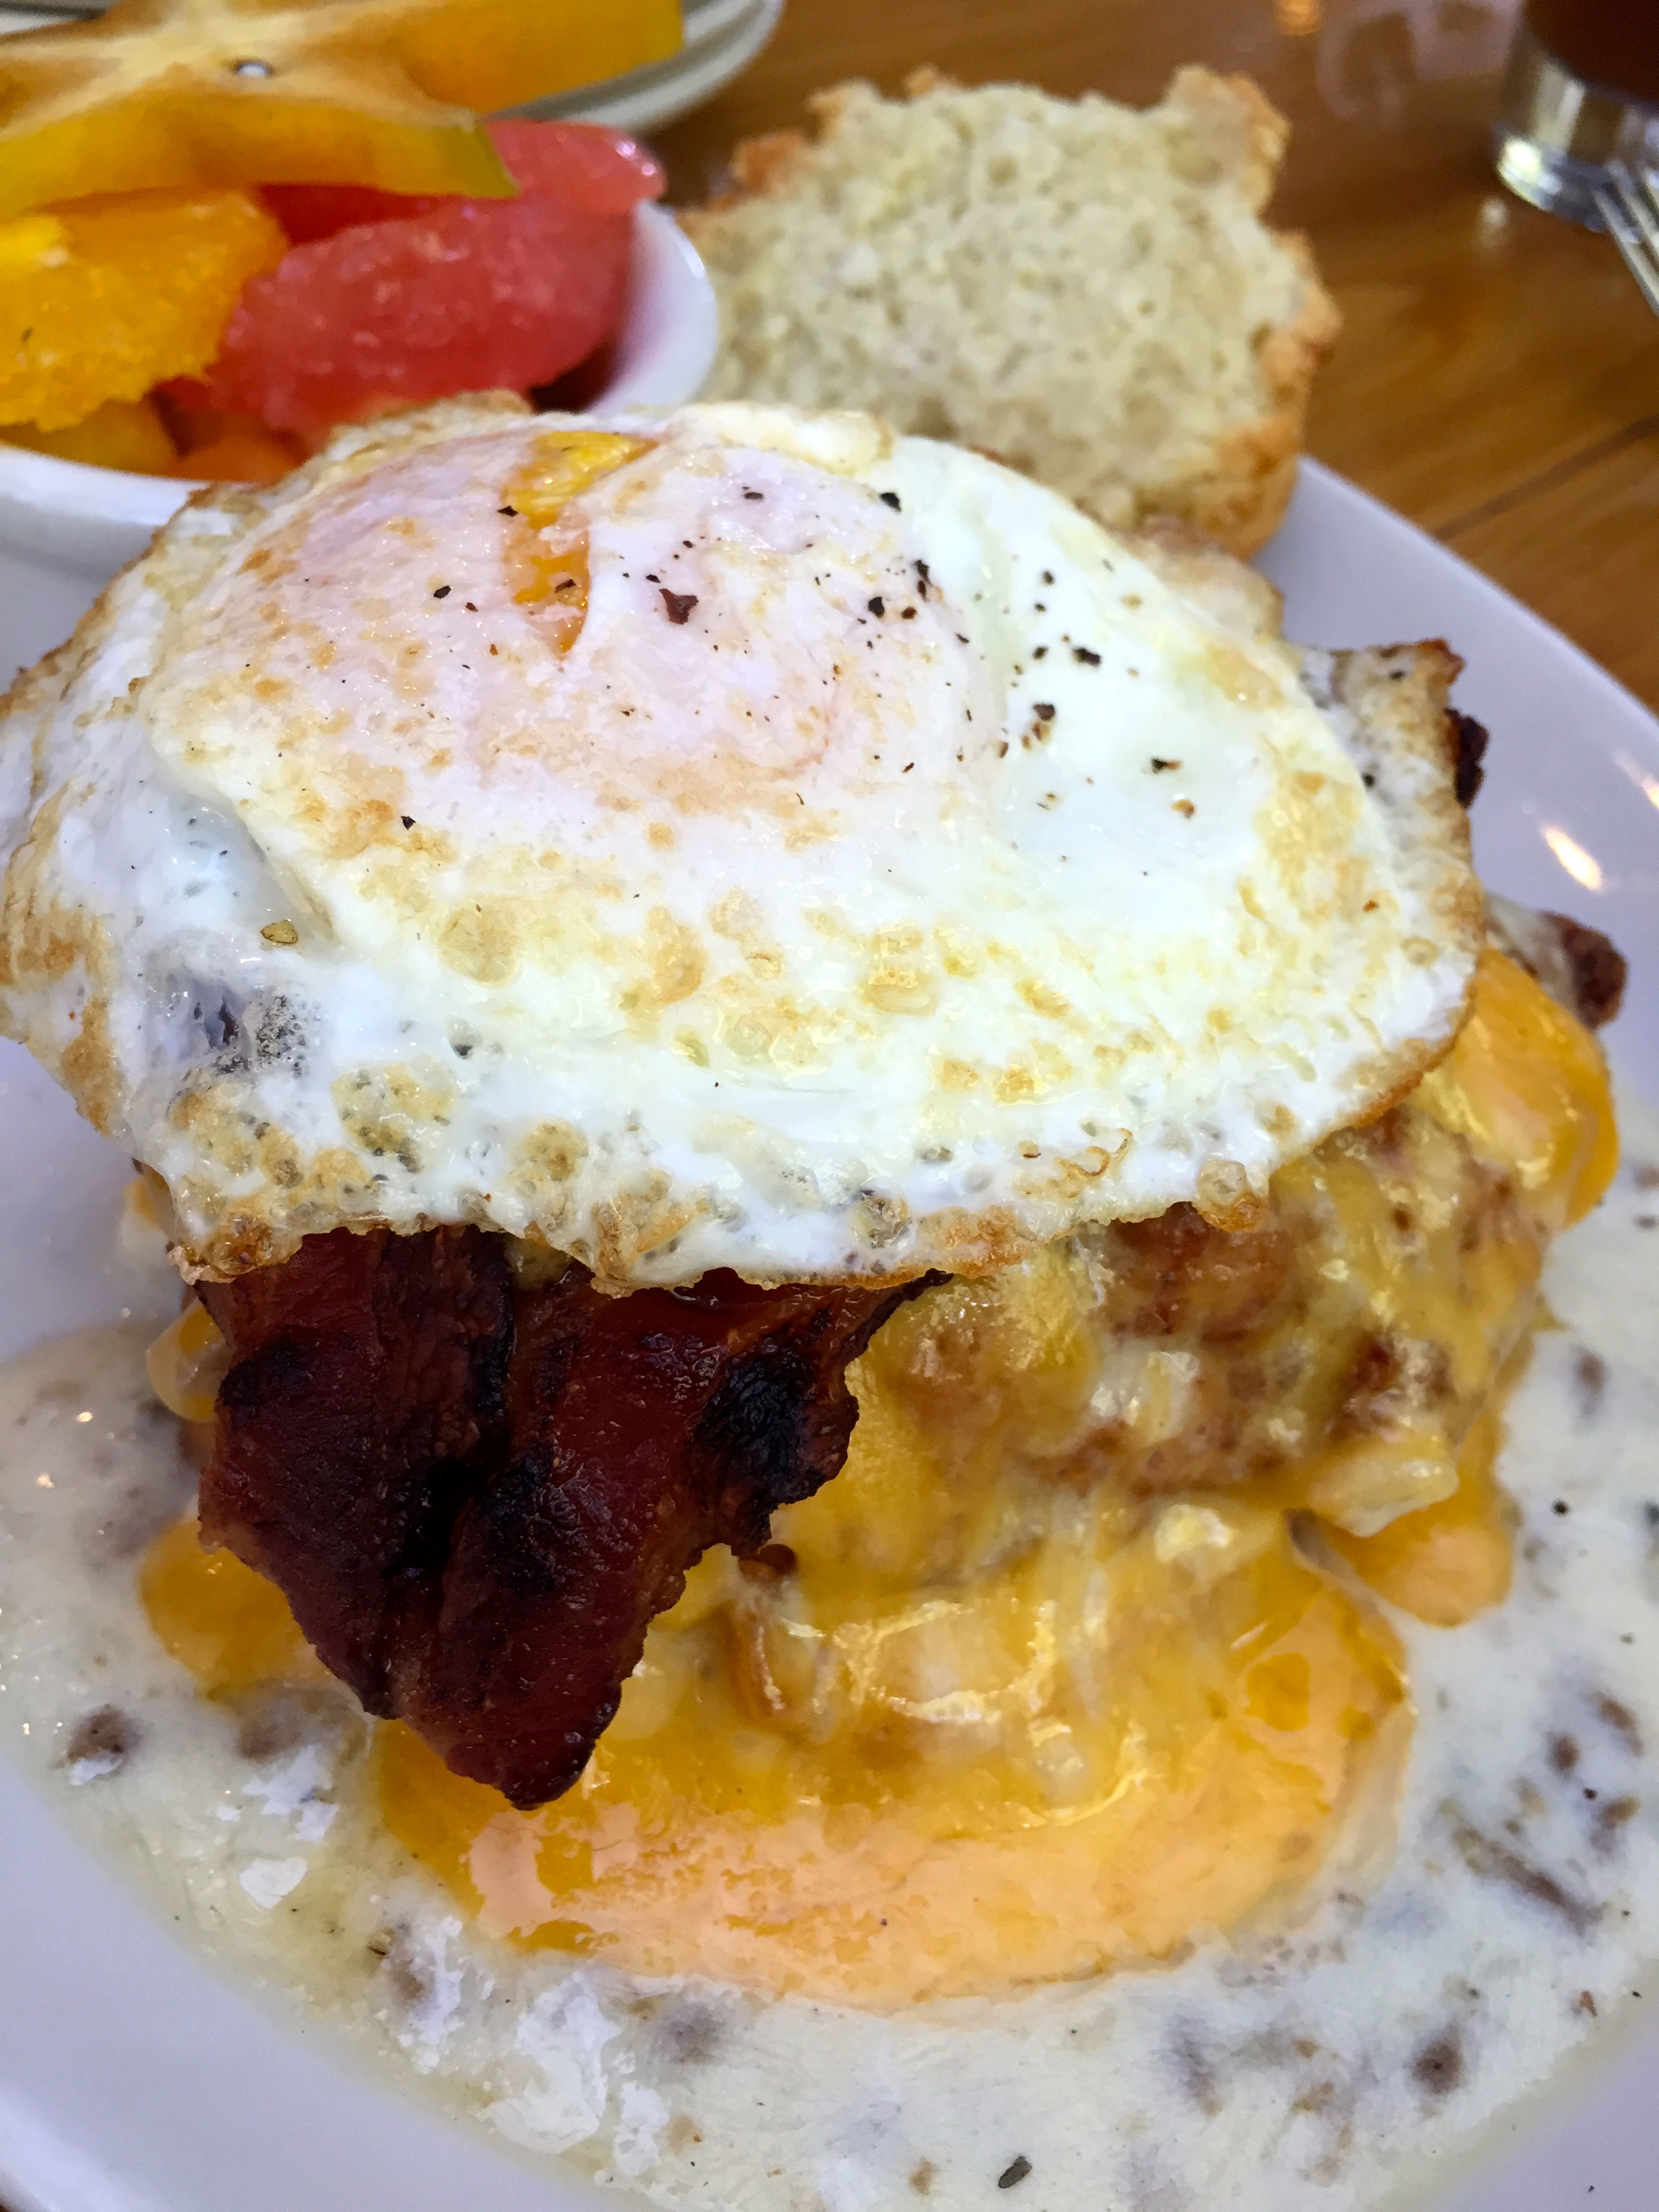 SxSW fried chicken, country gravy, bacon, cheddar, egg on a biscuit served with fruit.